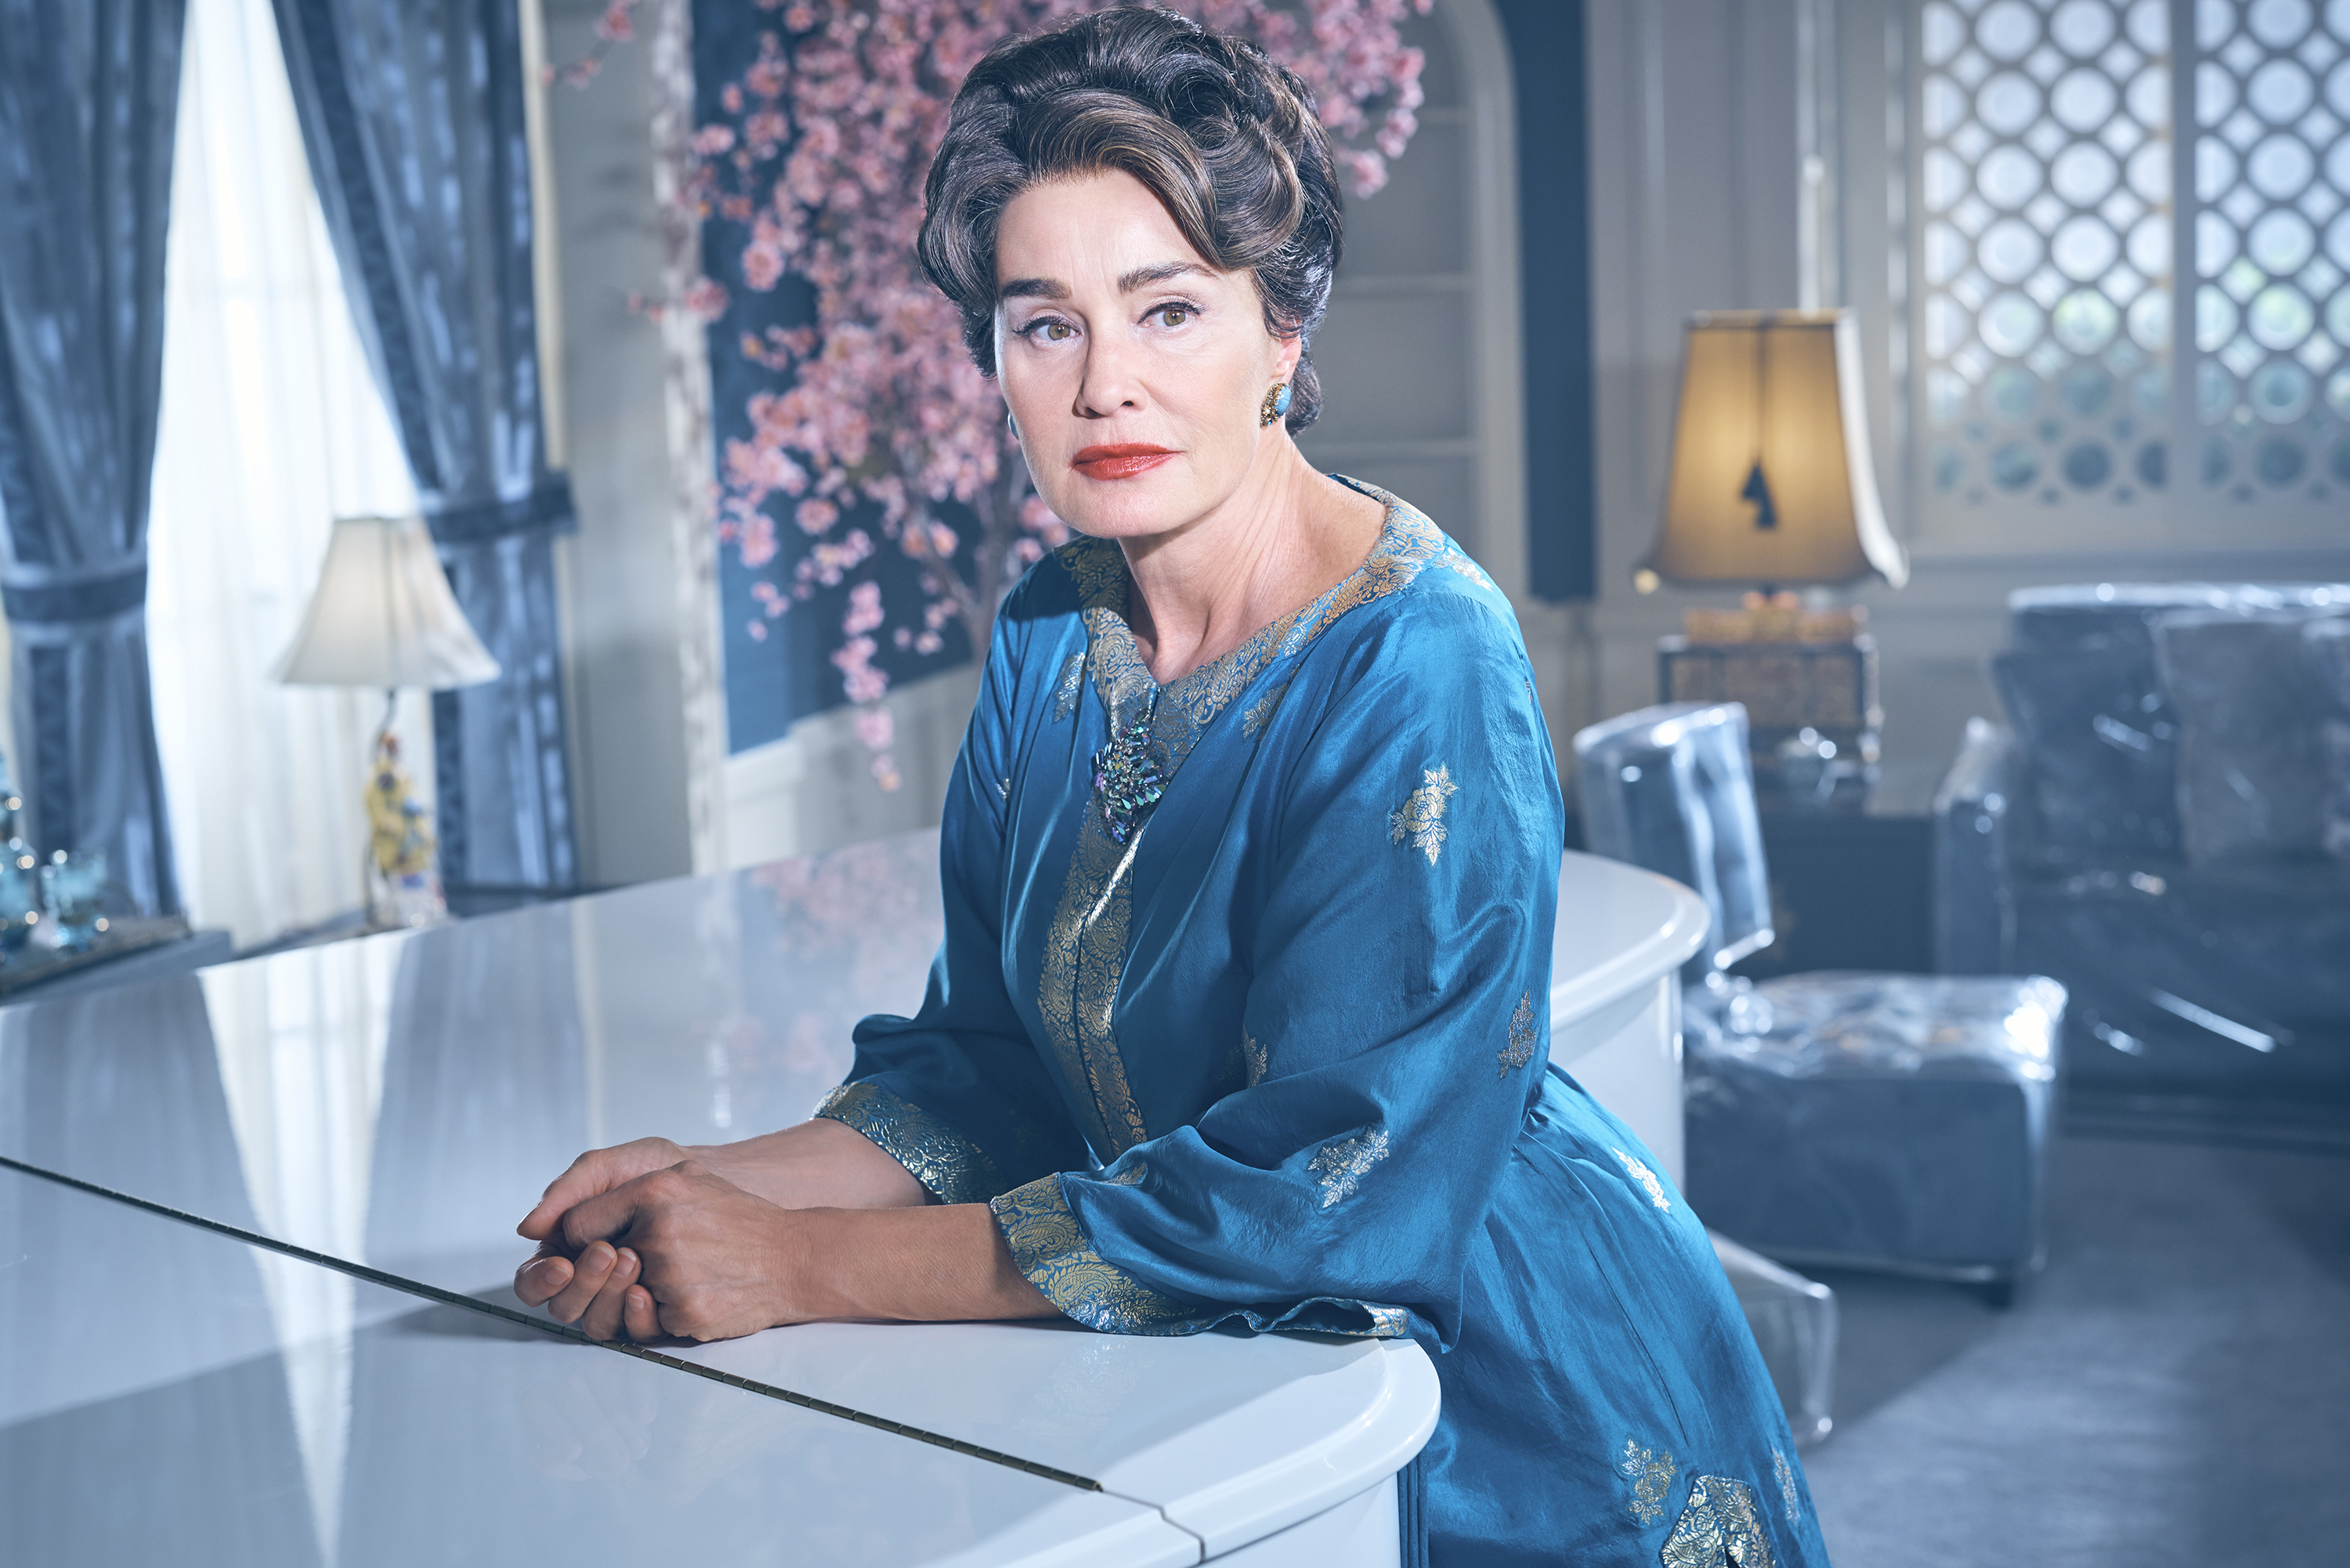 Feud Tv Show On Fx Season 2 Canceled Tv Shows Tv Series